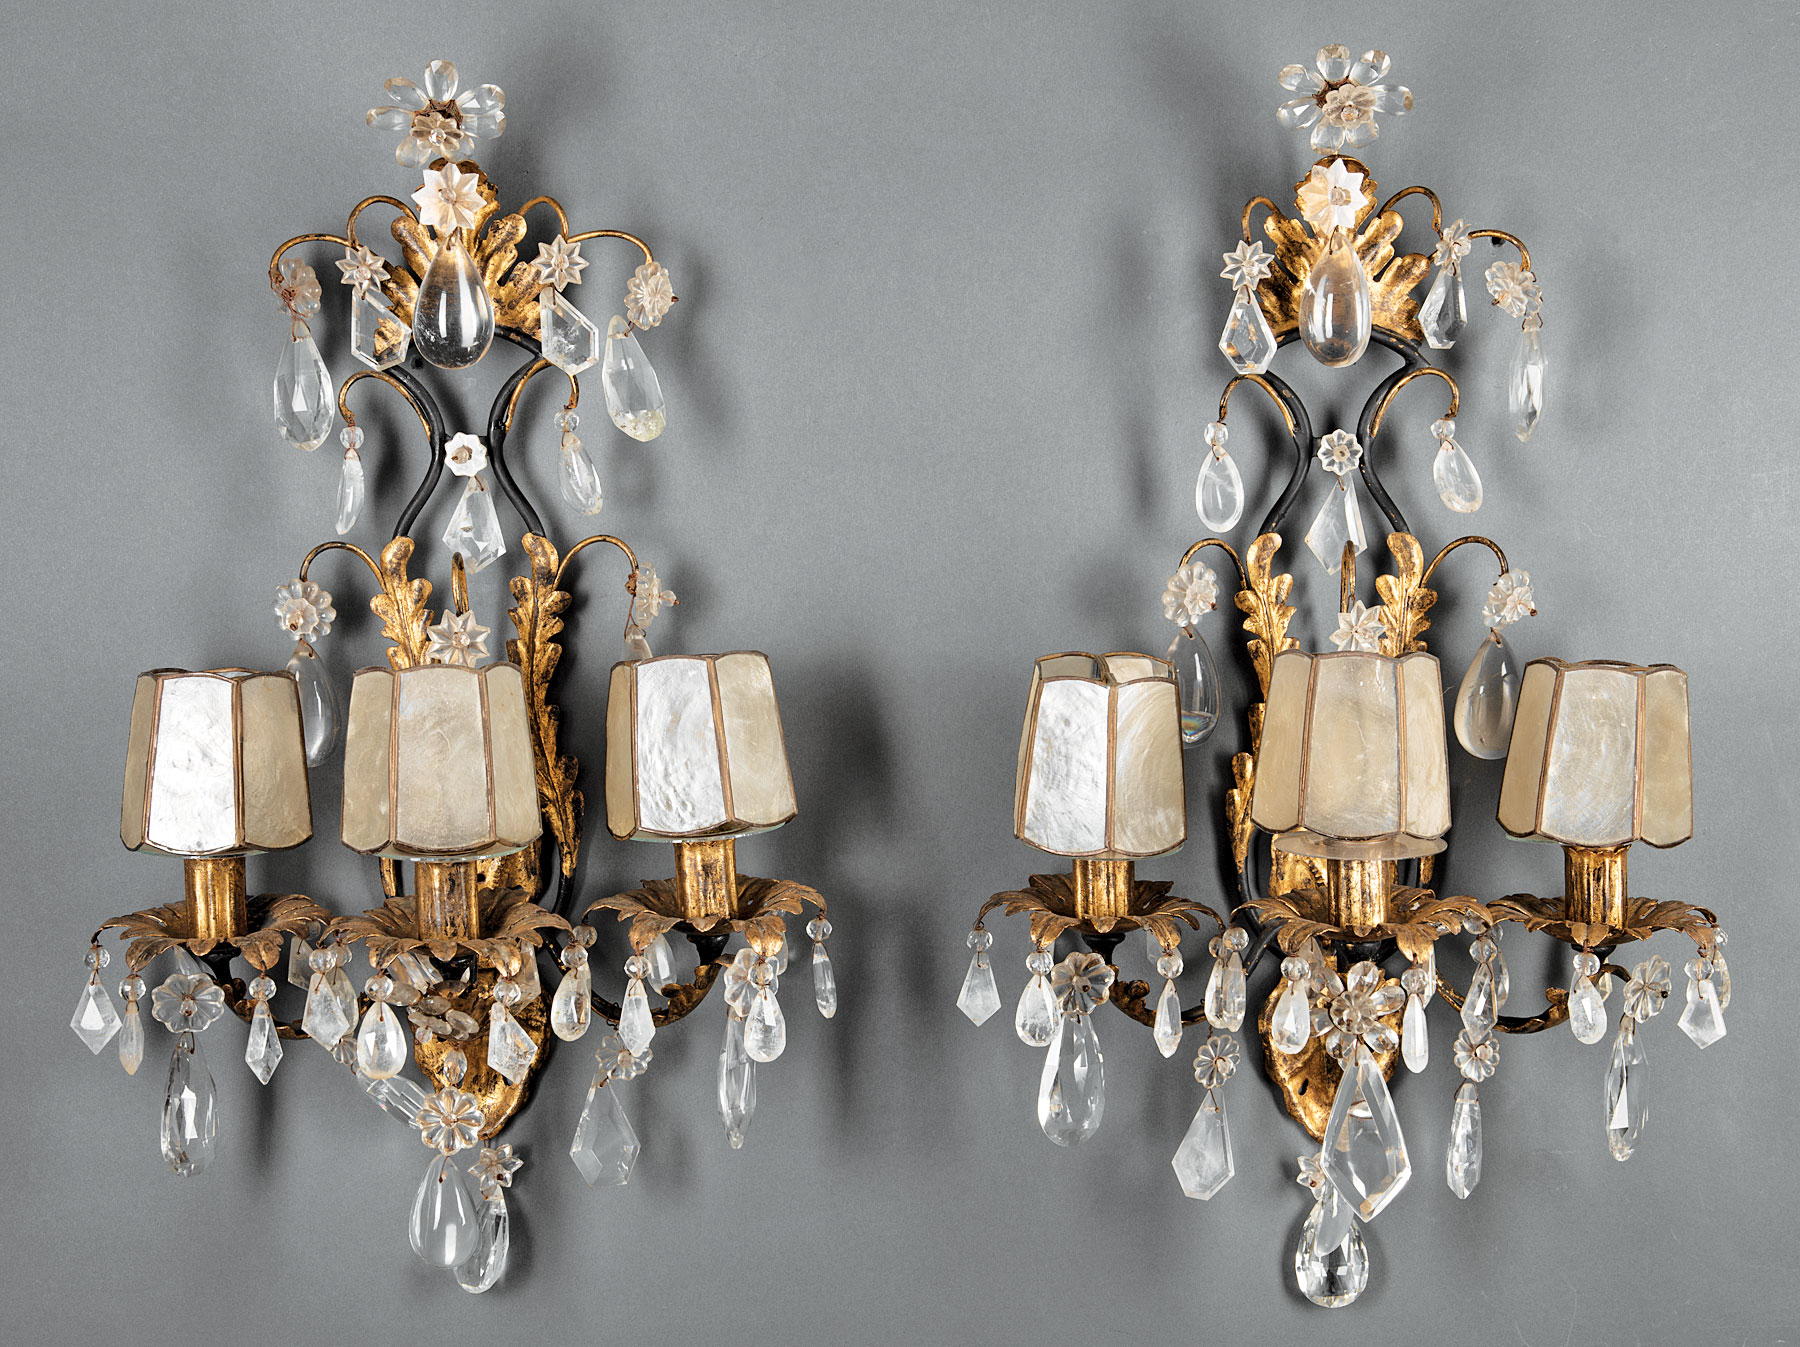 Lot 846 - Pair of Beaux Arts Gilt Metal, Cut Glass and Rock Crystal Three-Light Sconces , c. 1900, scroll